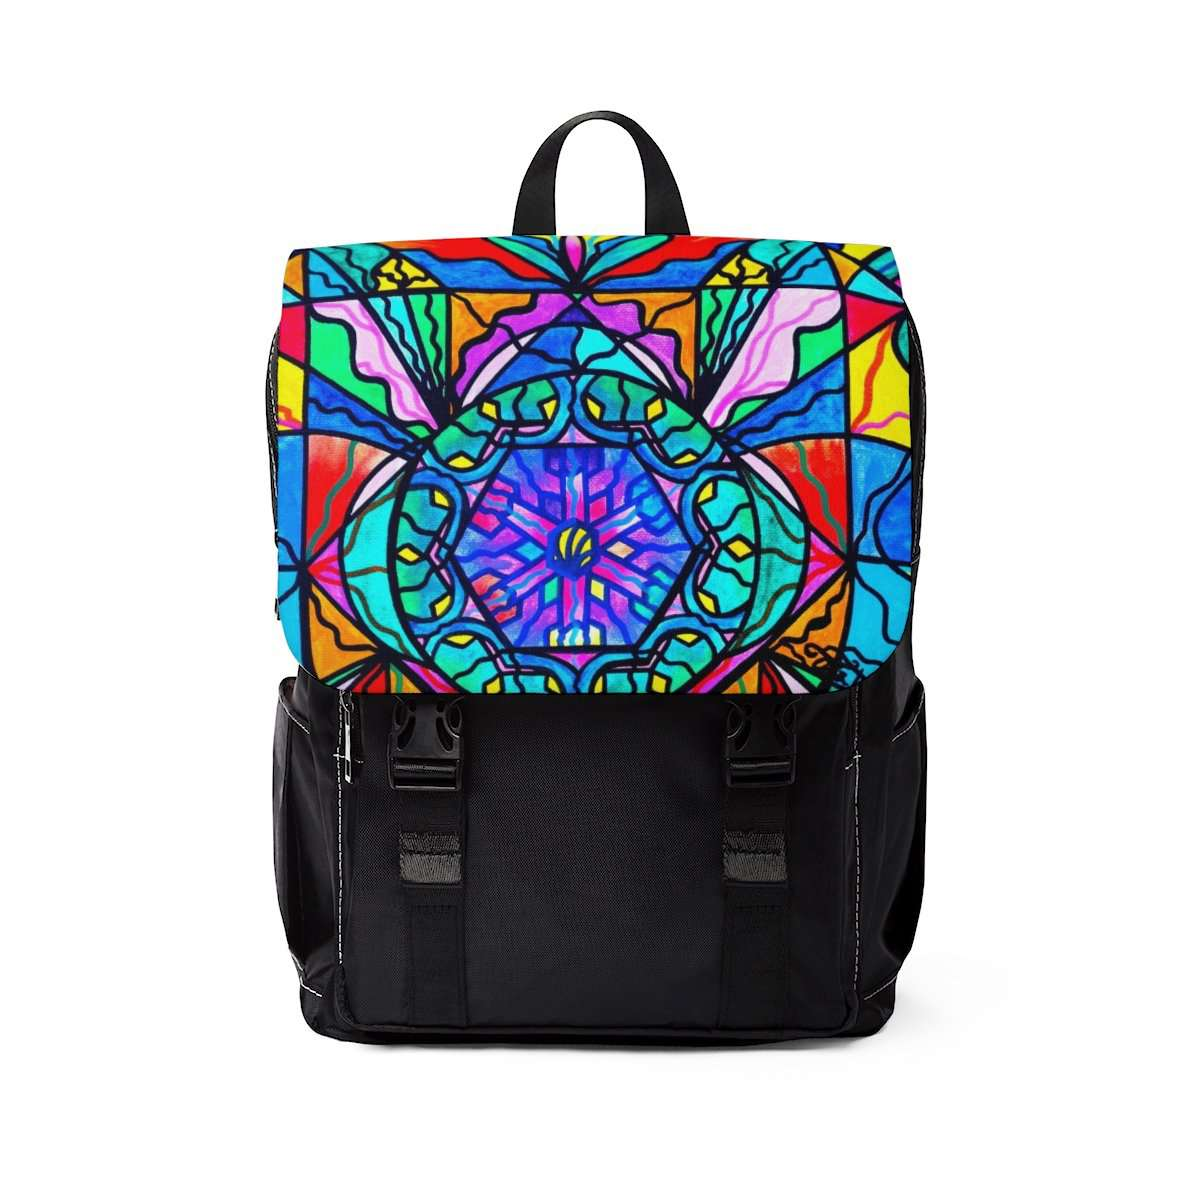 Anahata - Heart Chakra - Unisex Casual Shoulder Backpack